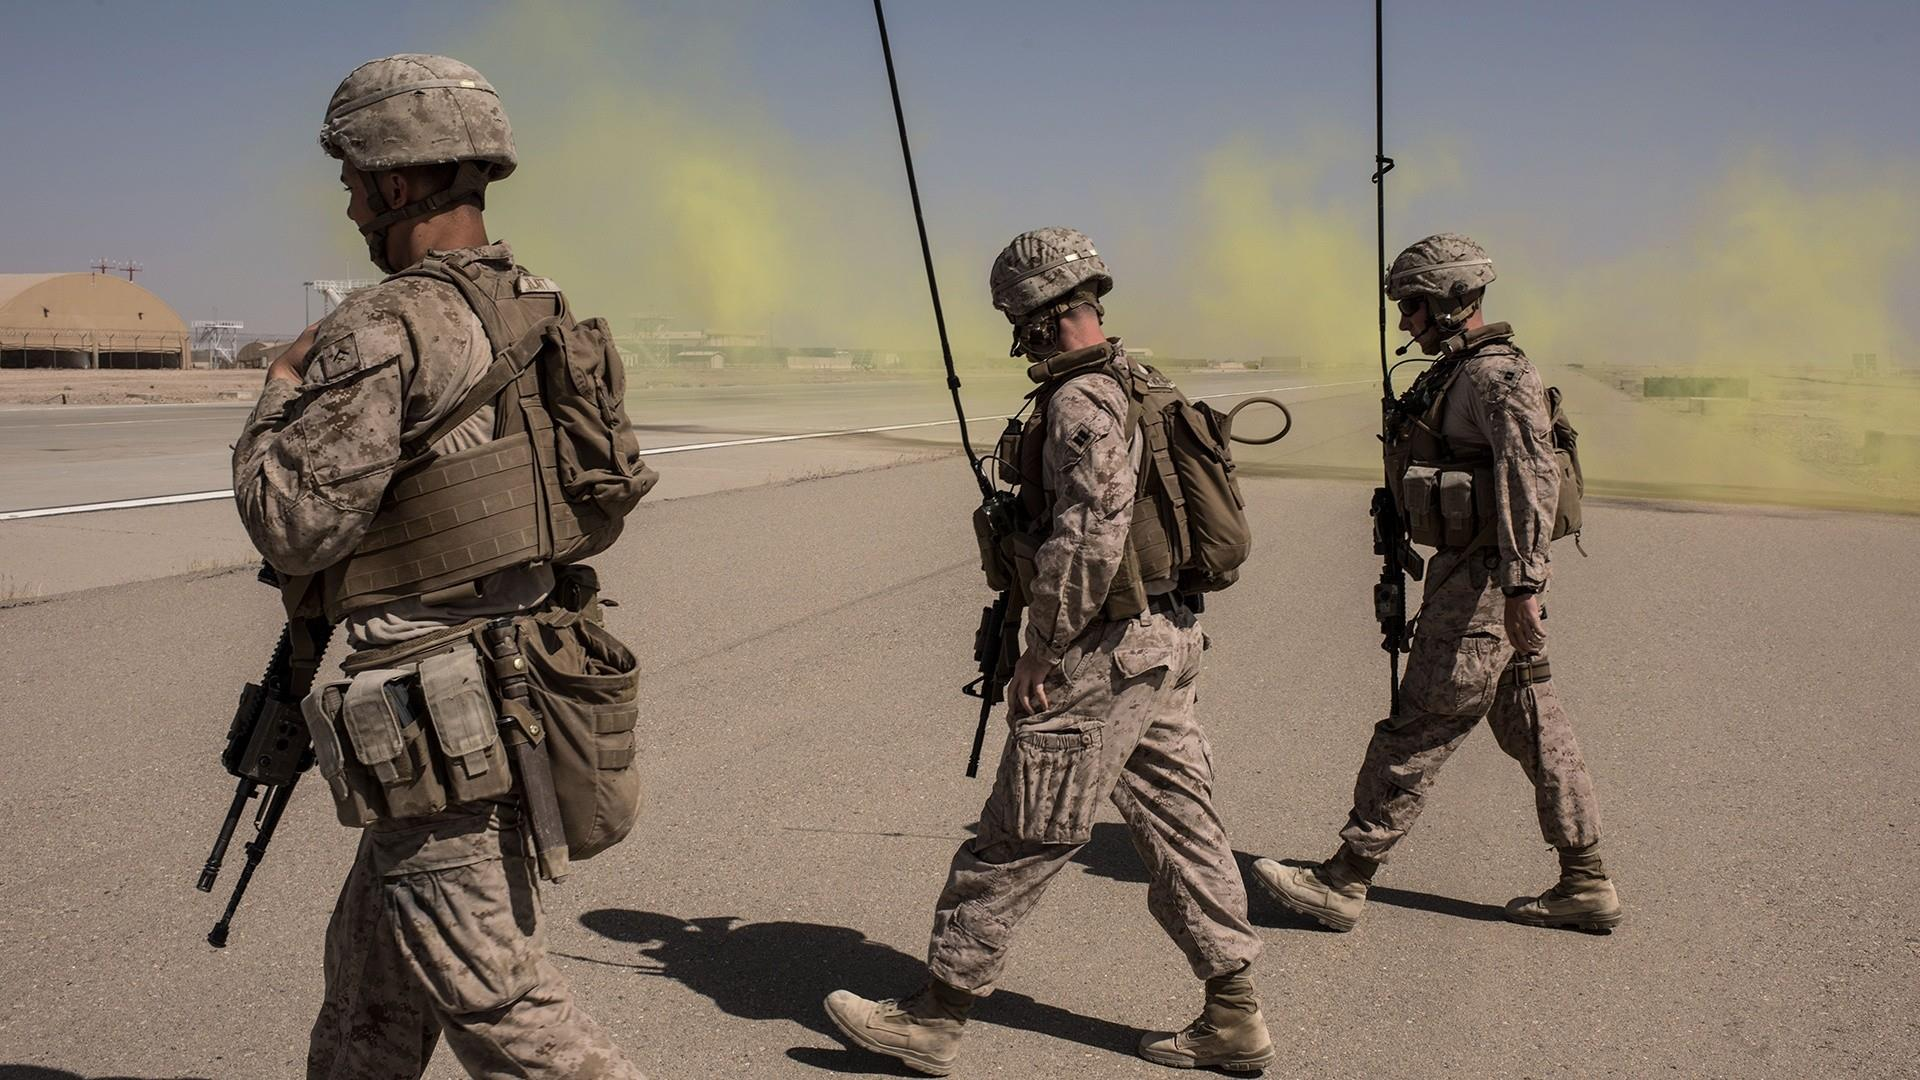 U.S. officials misled public on Afghan war, according to Washington Post